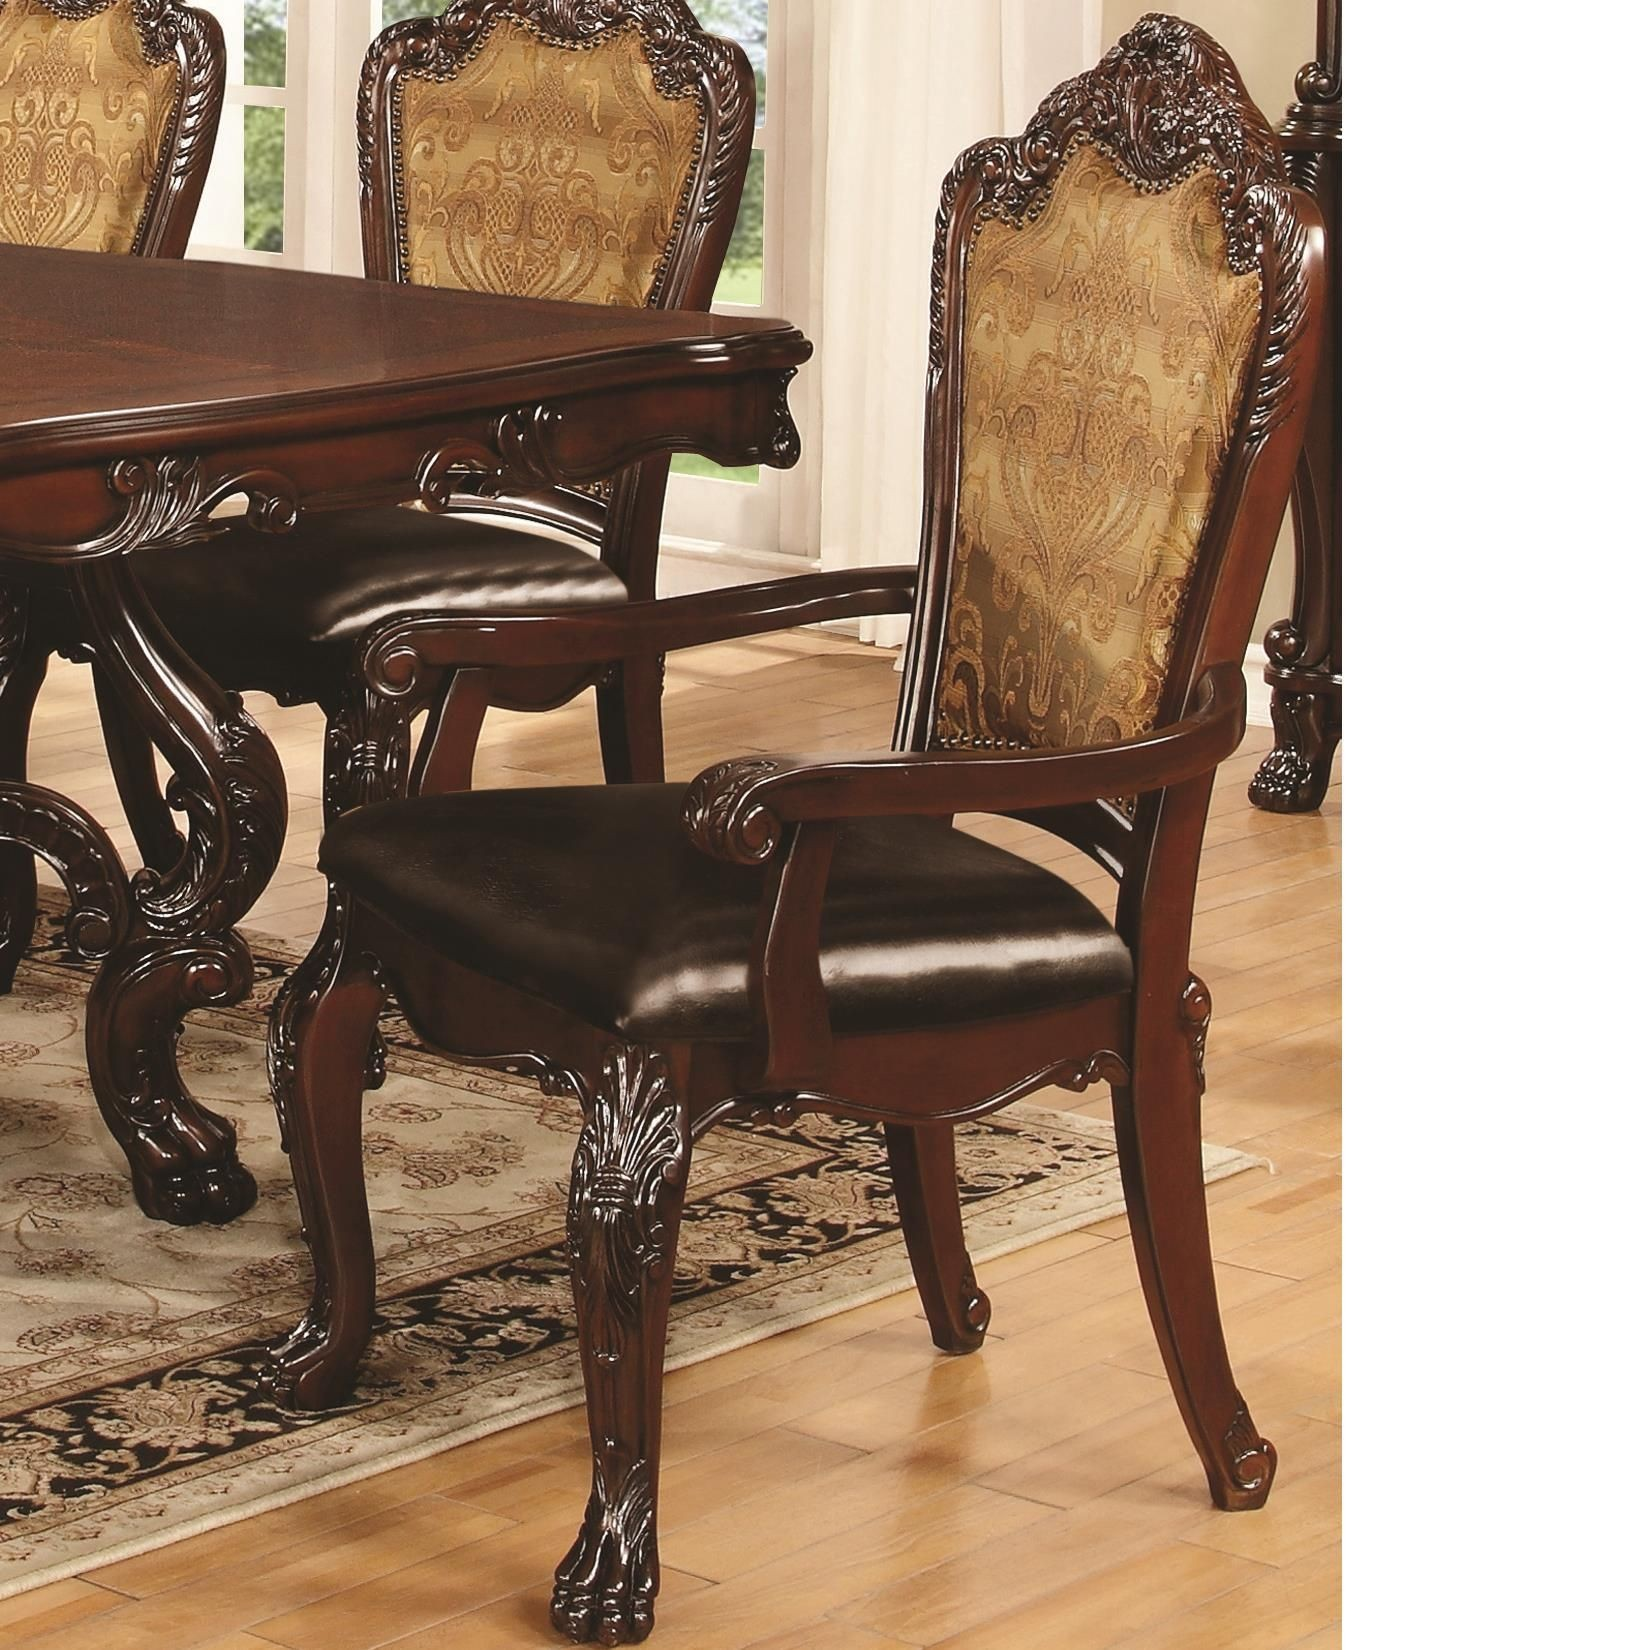 Abigail Cherry Upholstered Dining Arm Chair Set of 2 from ...